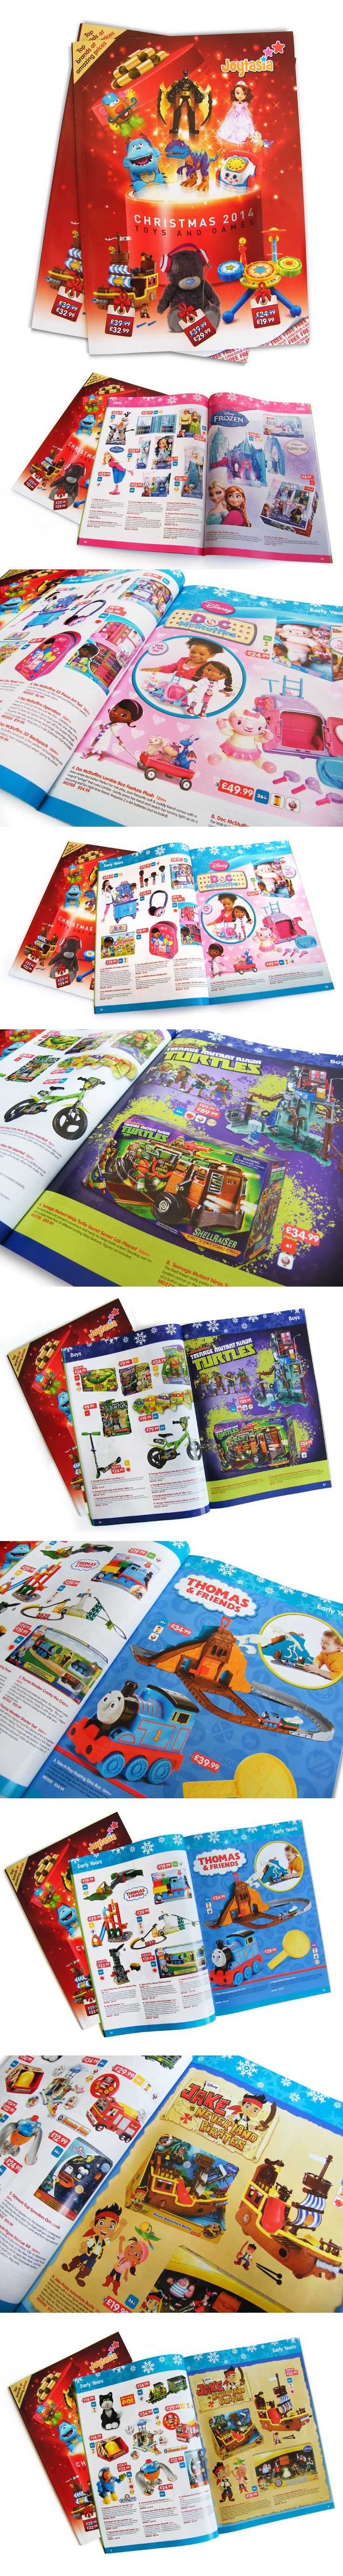 80 page Christmas Toy Catalogue for 2014 - available in stores now. Occasional 'feature pages' highlight key product ranges.